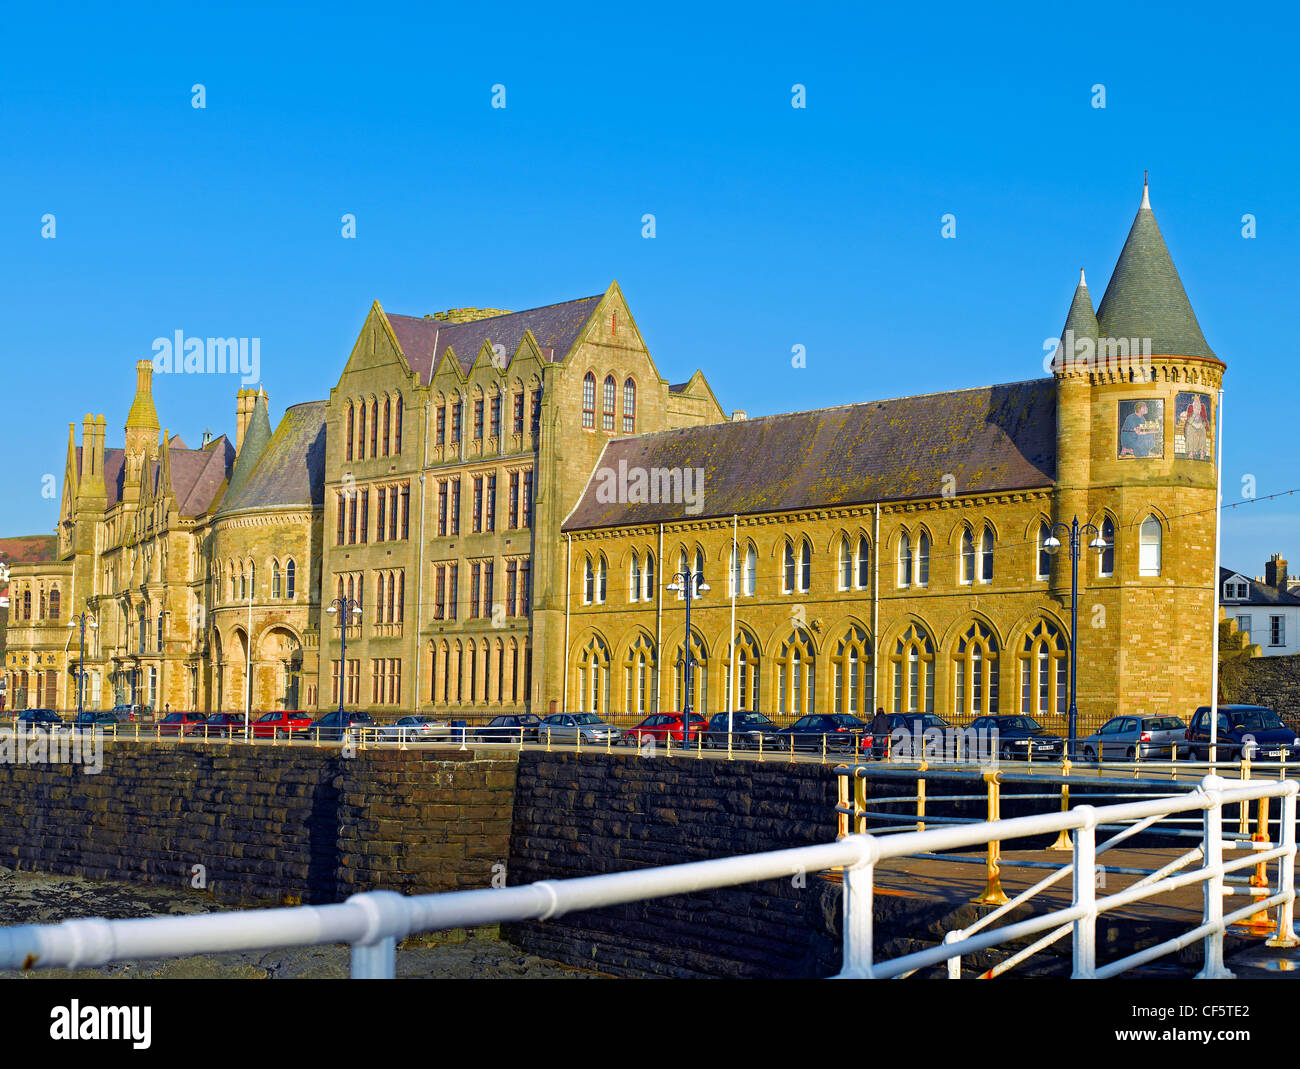 Old College Aberystwyth University, originally opened in 1865 as the Castle Hotel. It is one of finest examples - Stock Image